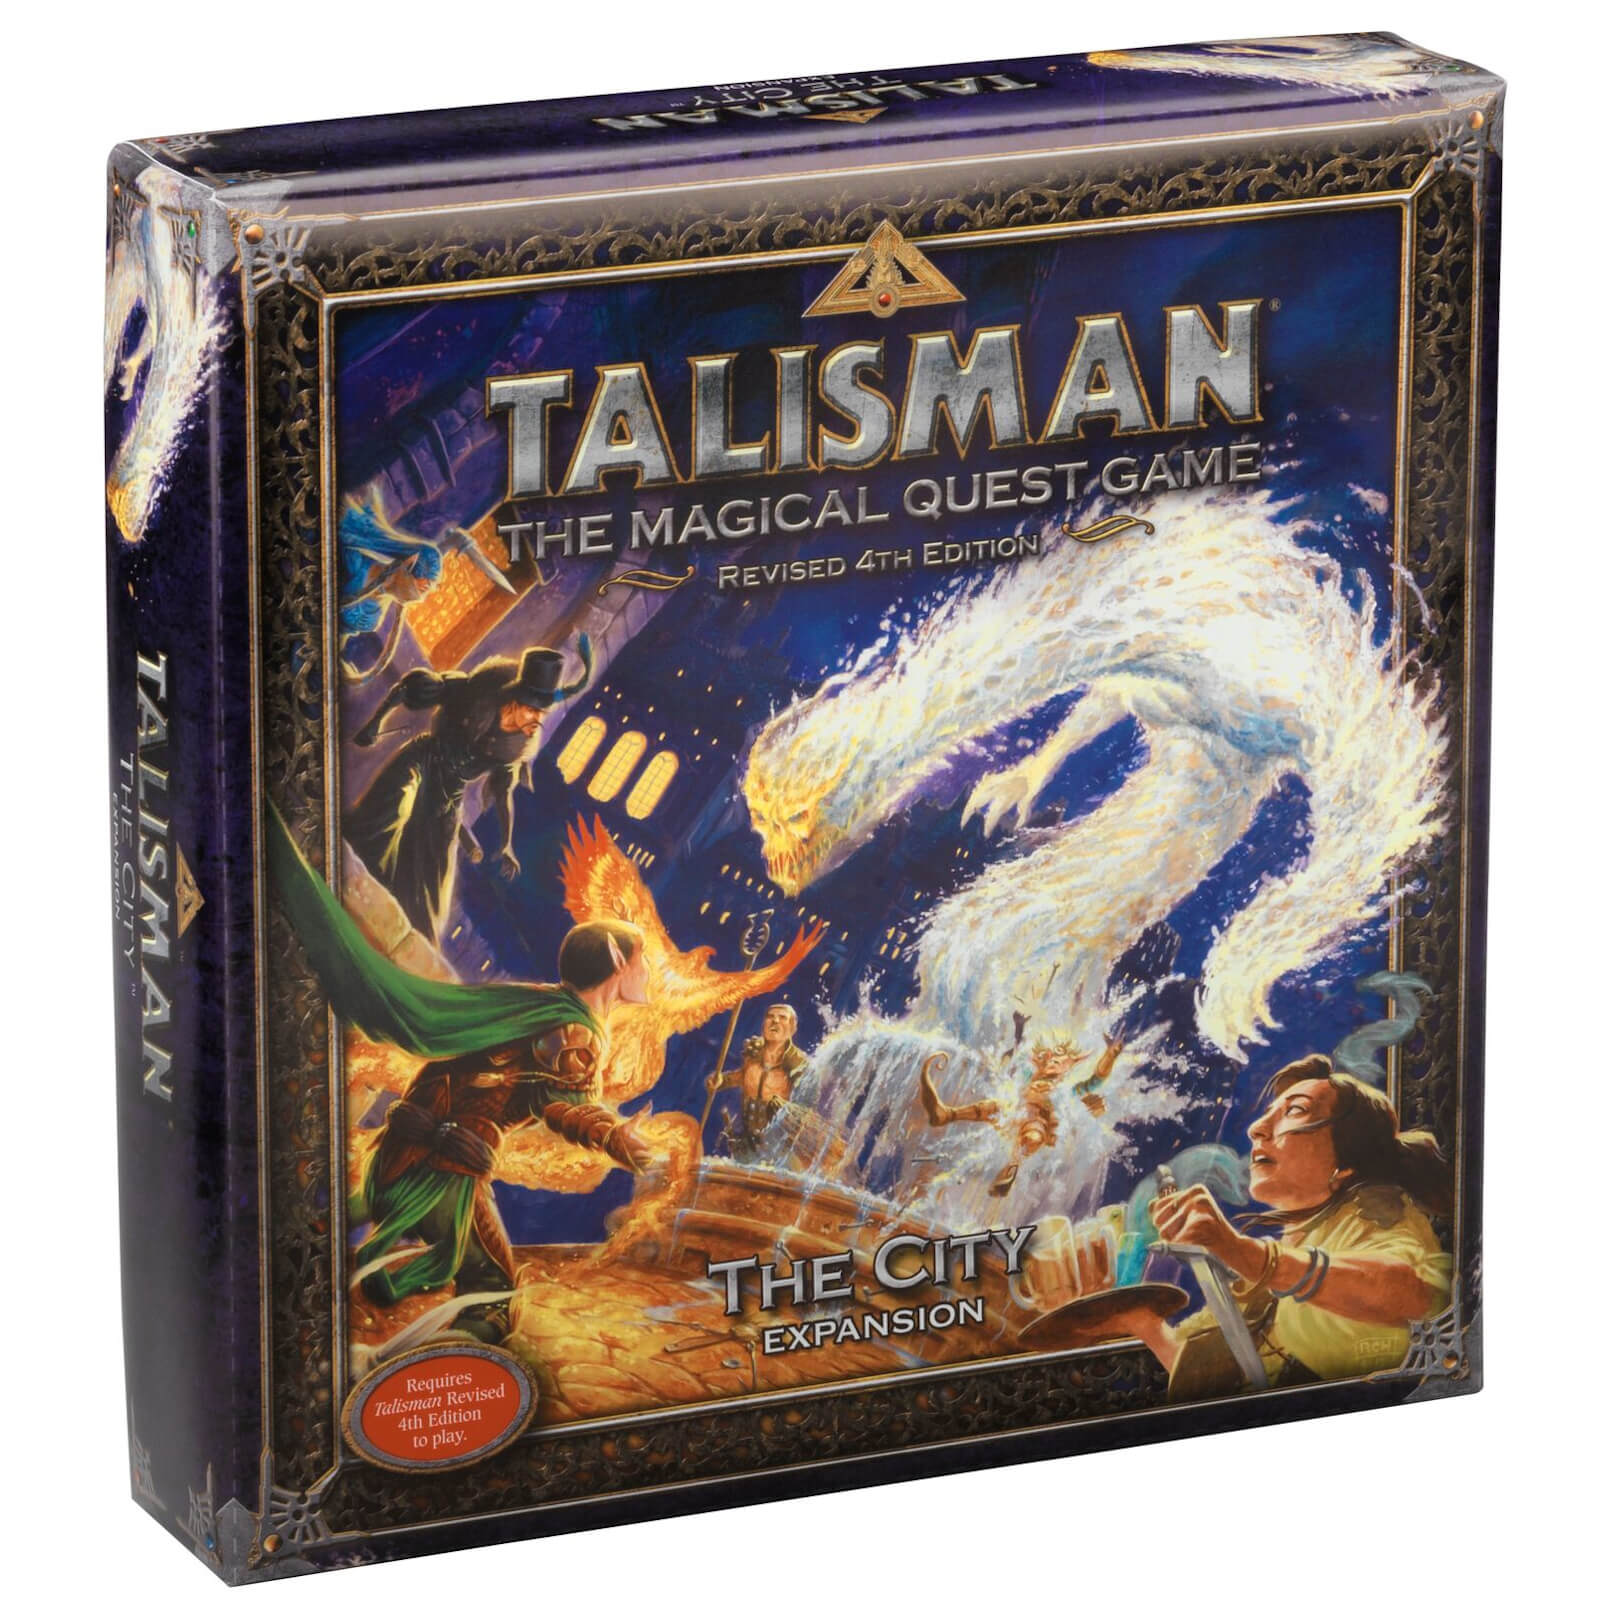 Image of Talisman Board game 4th edition Expansion